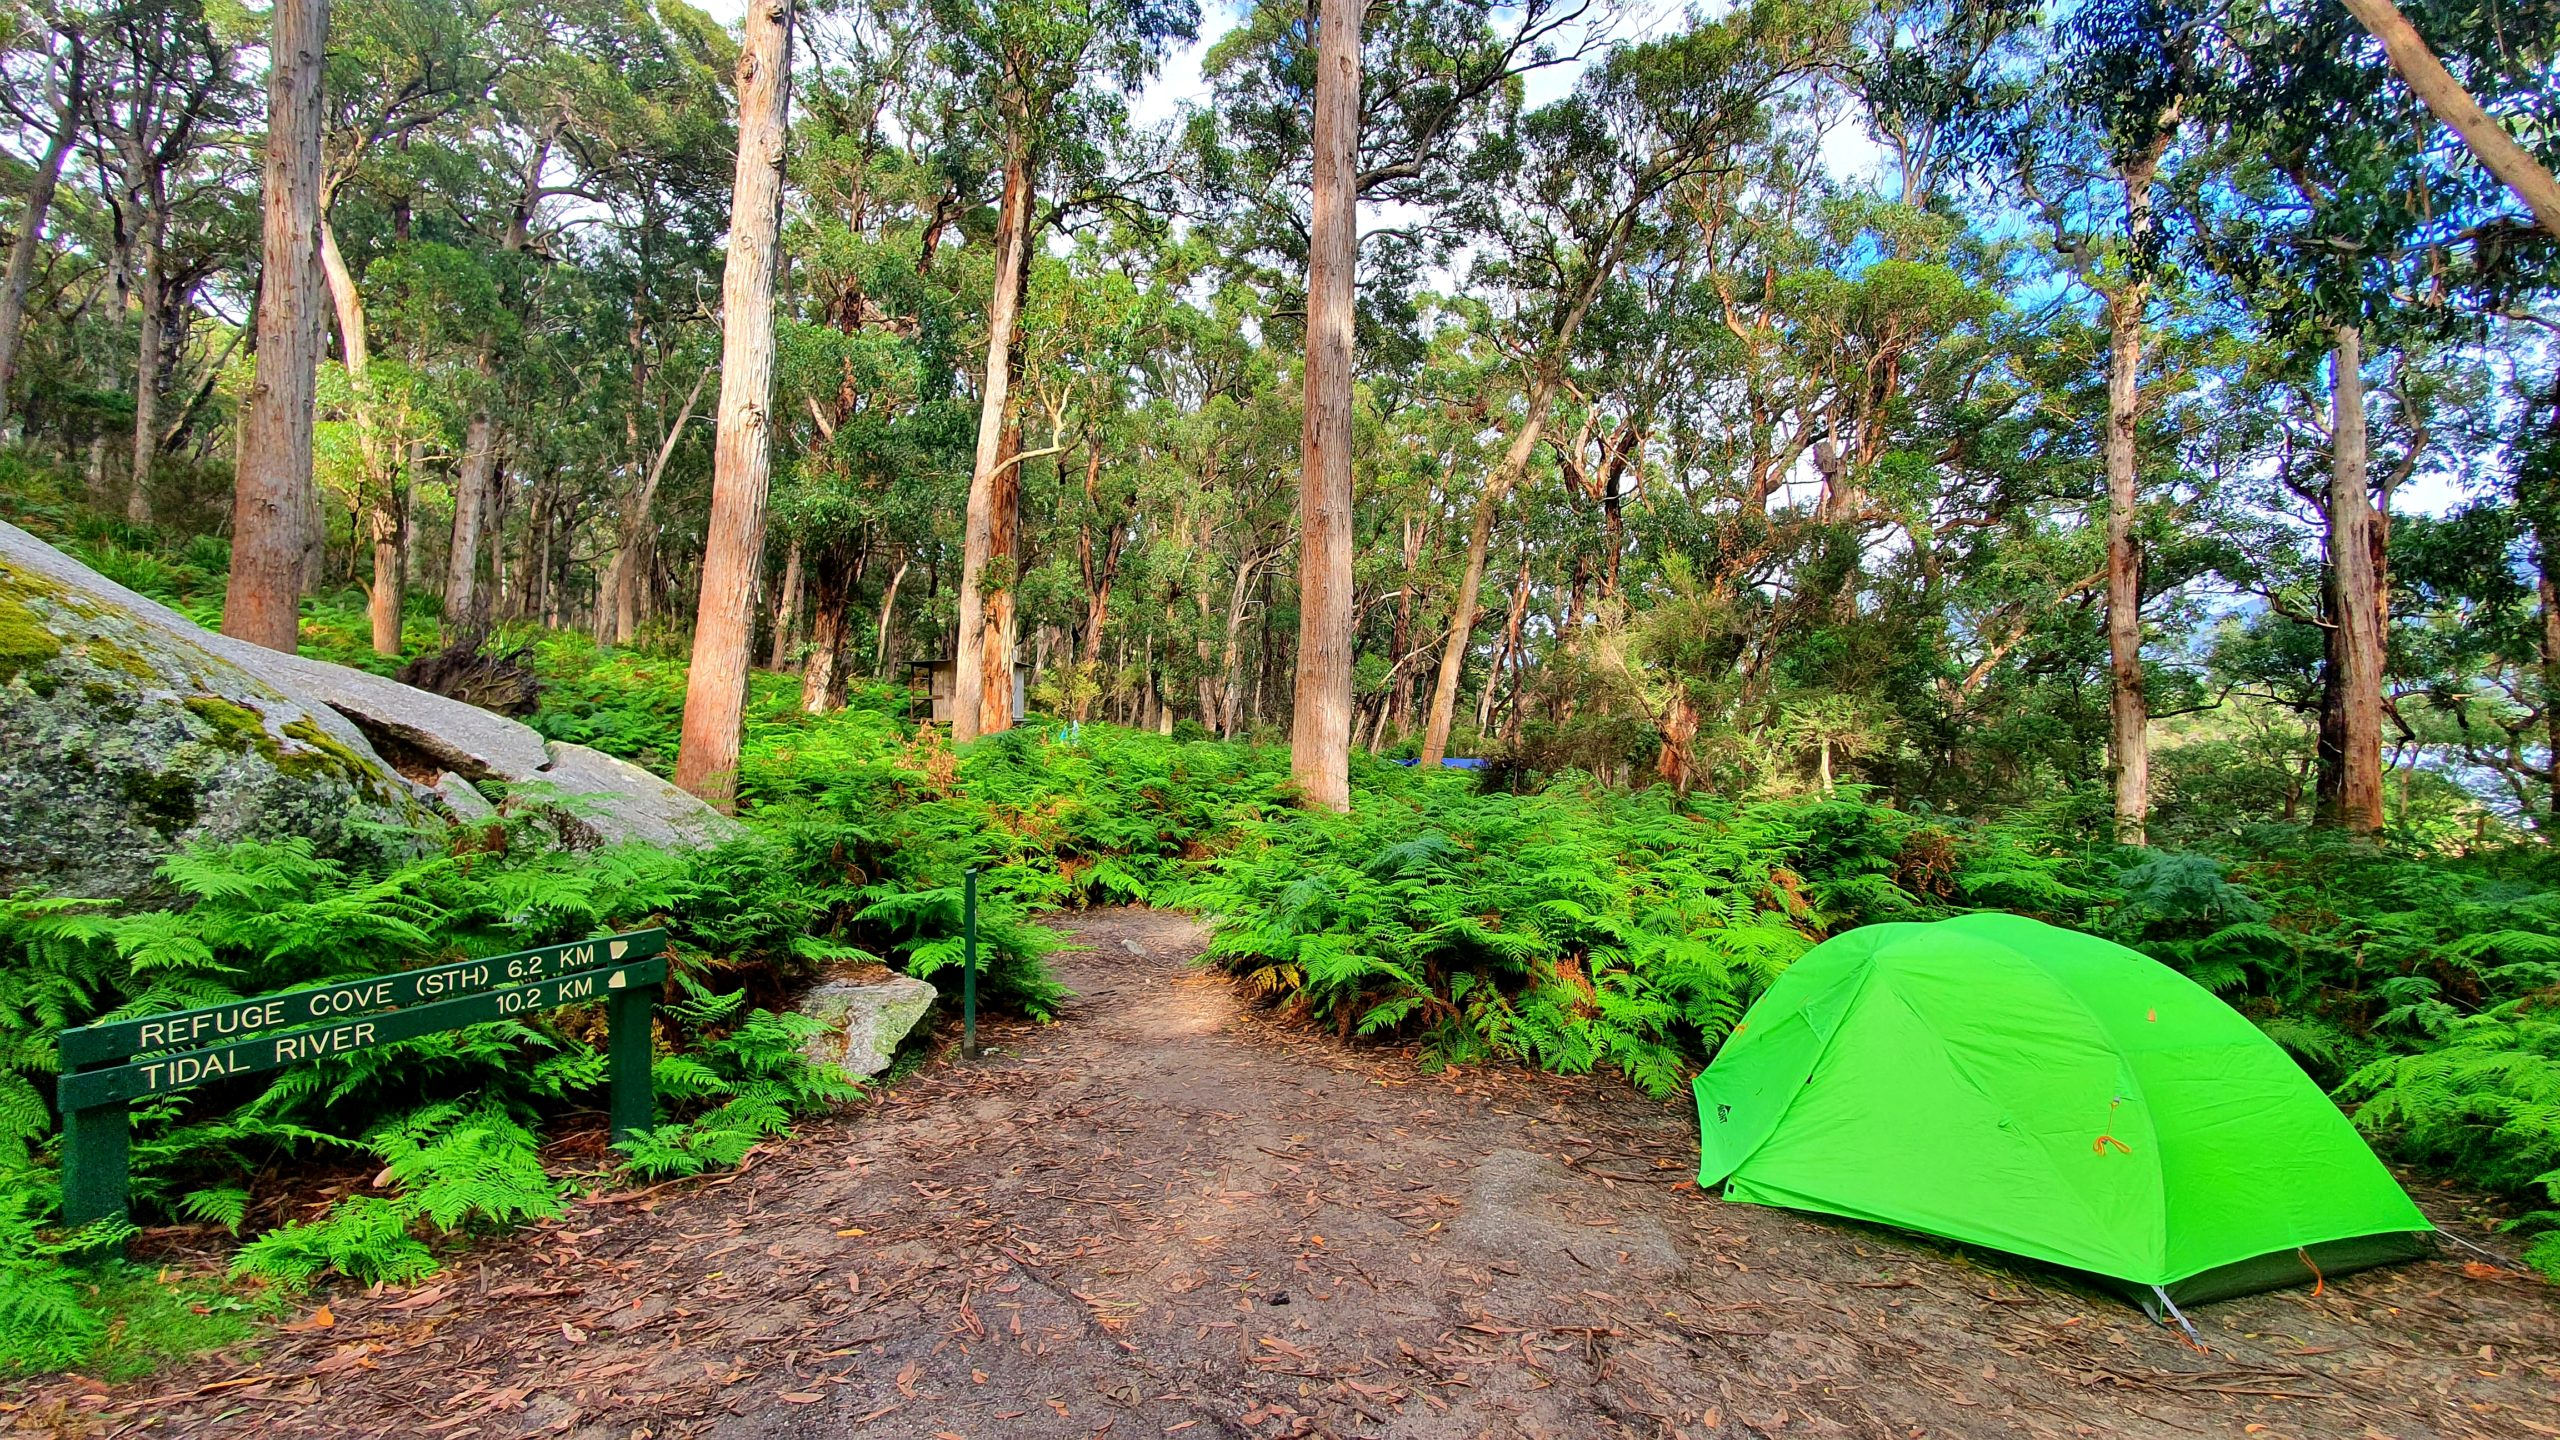 Sealers Cove campsite is what you need to know about Wilsons Promontory